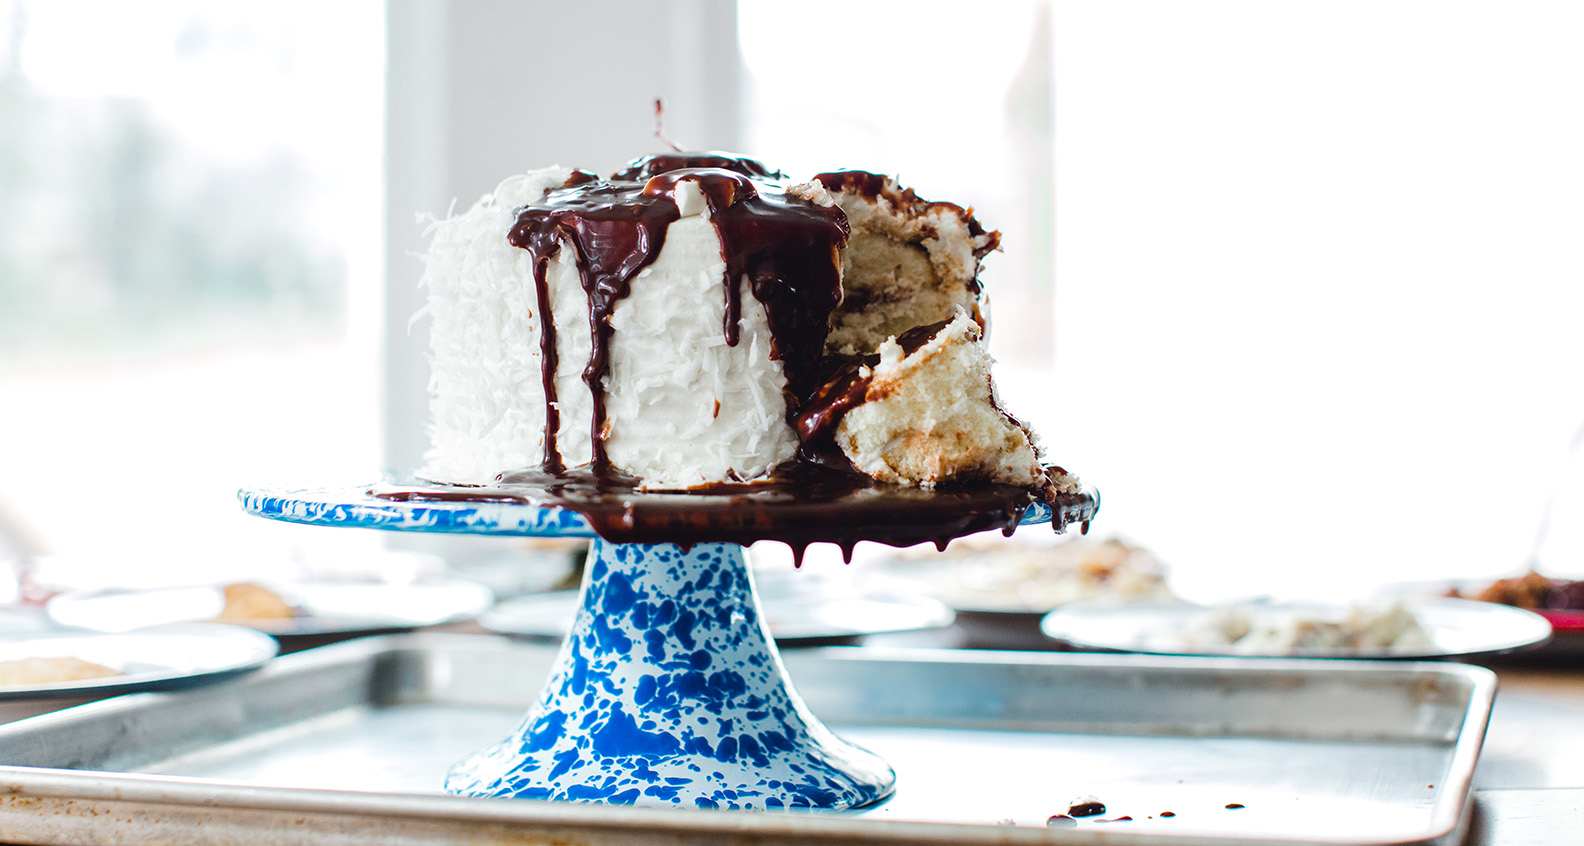 Chocolate-covered coconut cake